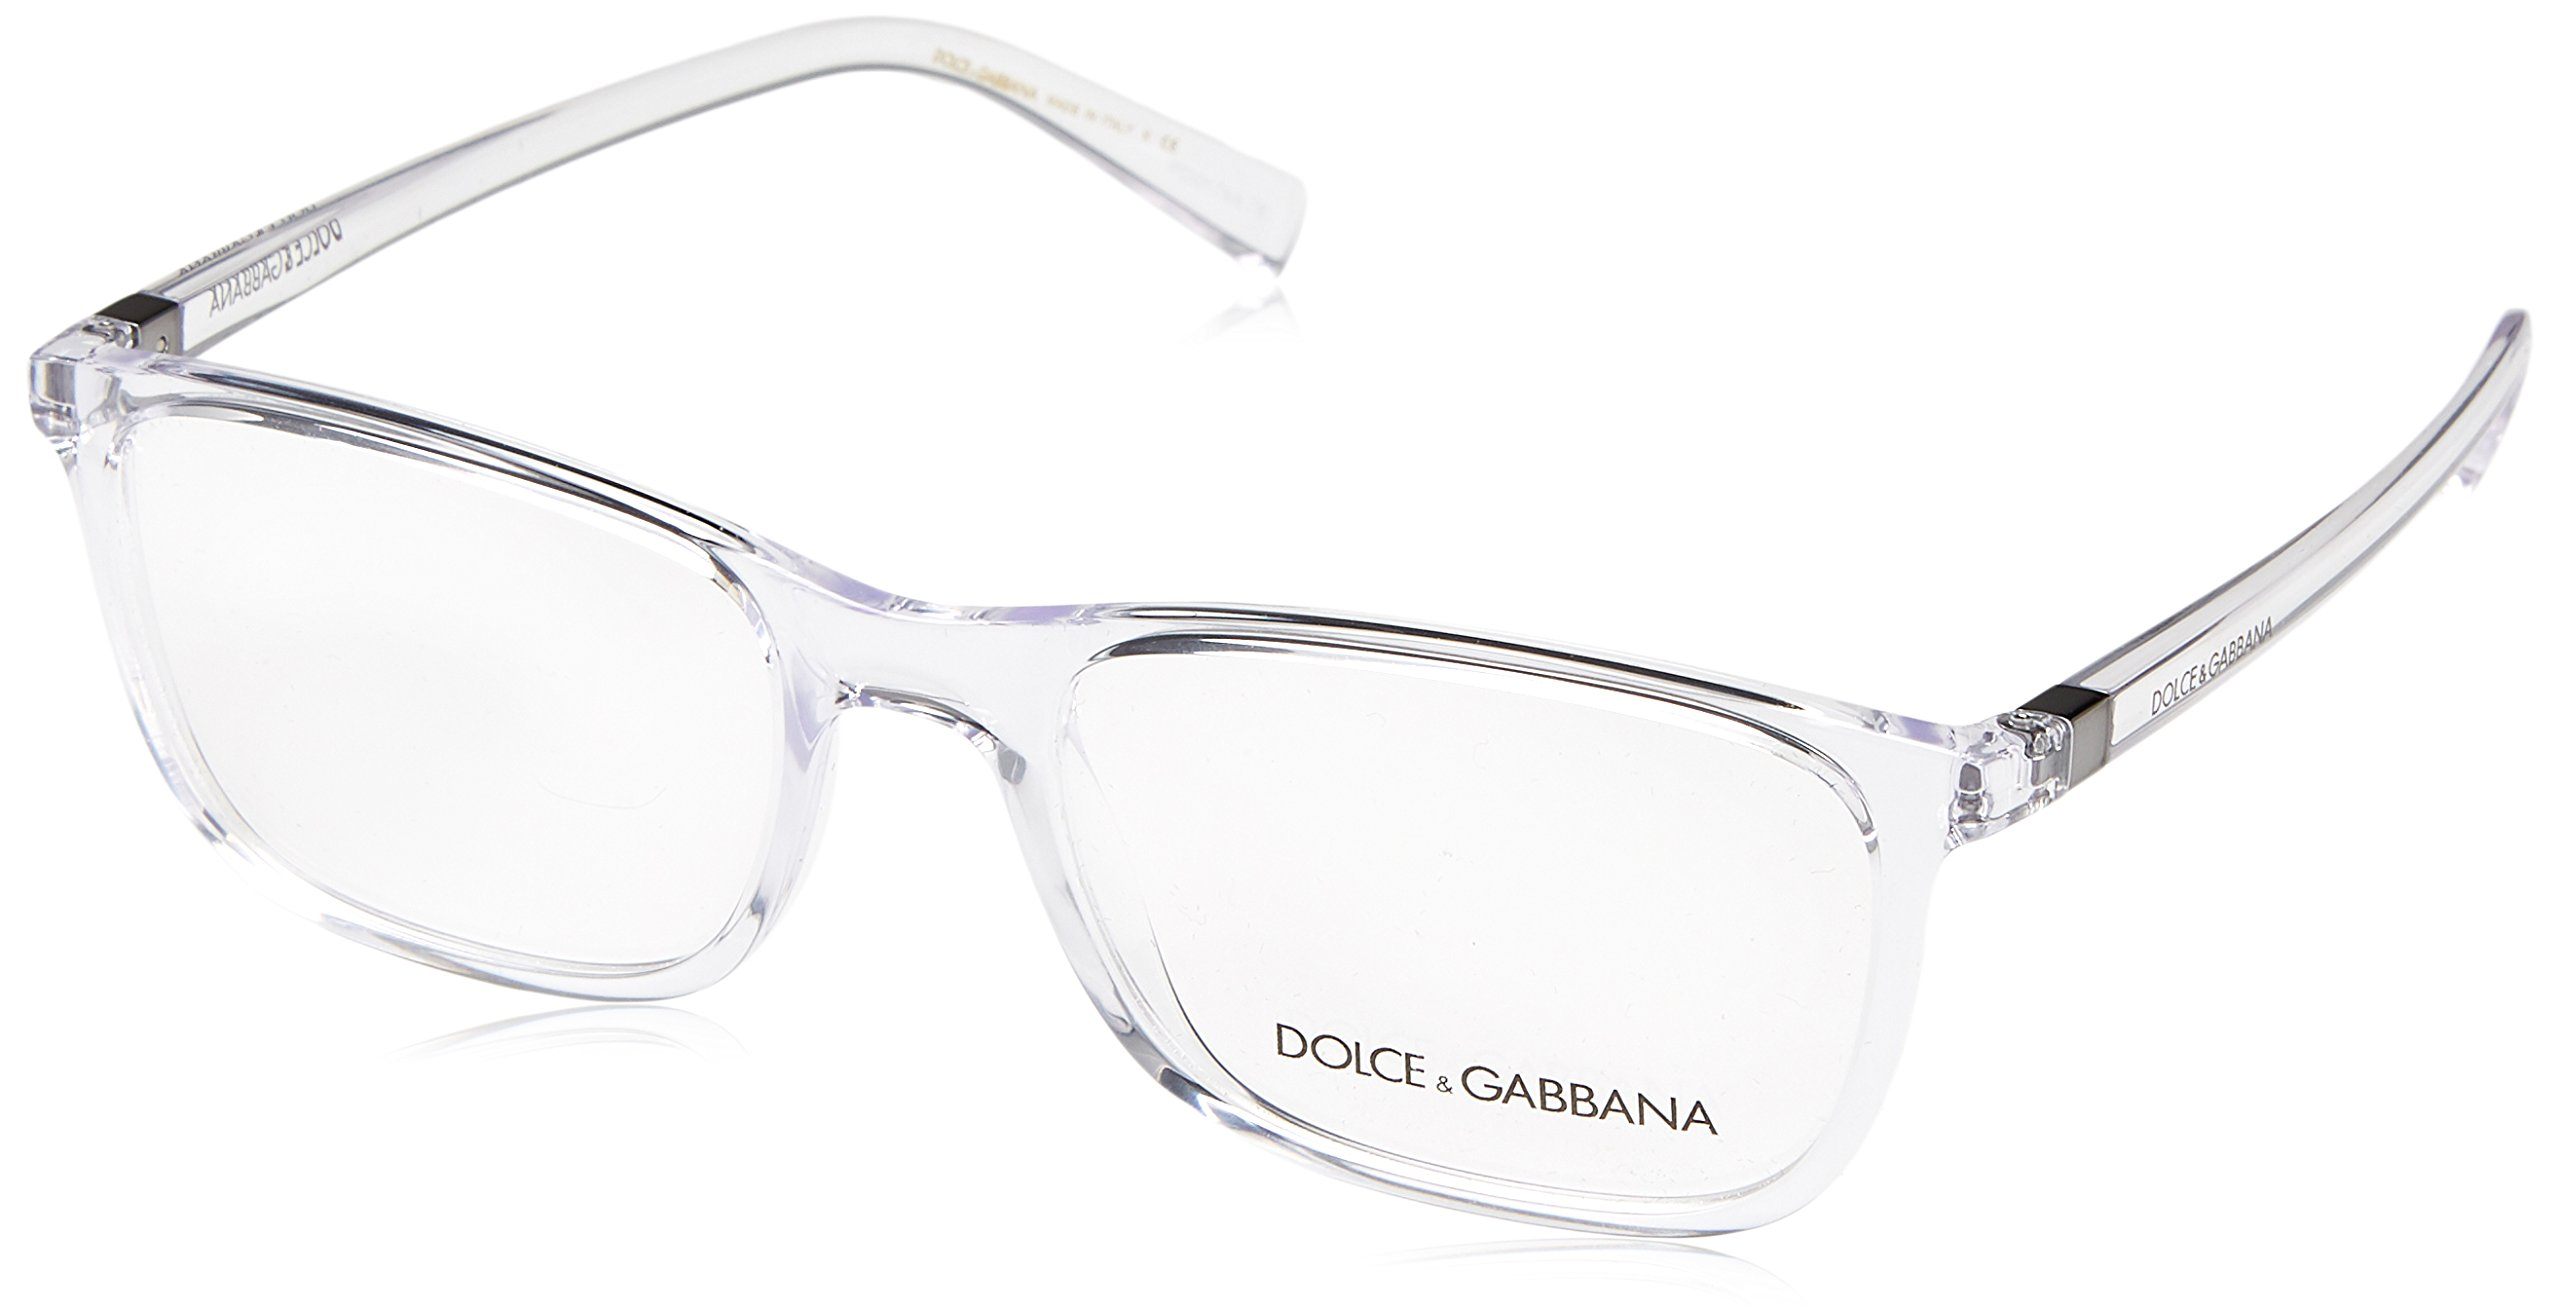 509b07f2e2d Dolce Gabbana Glasses Frames Top Deals   Lowest Price